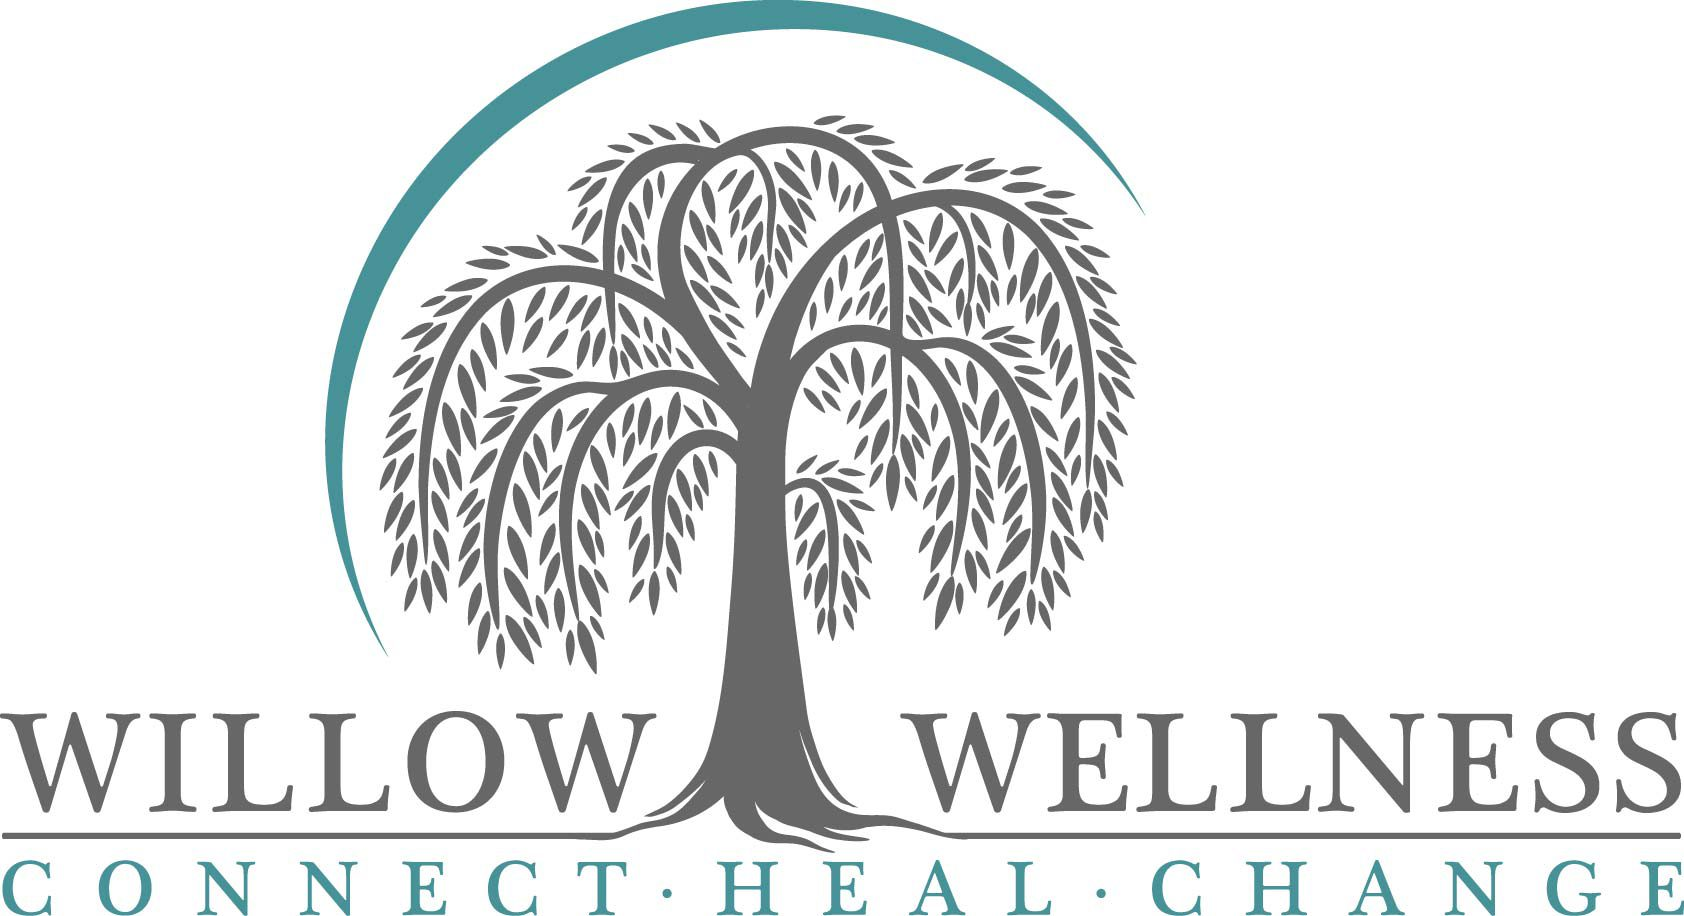 Willow Wellness